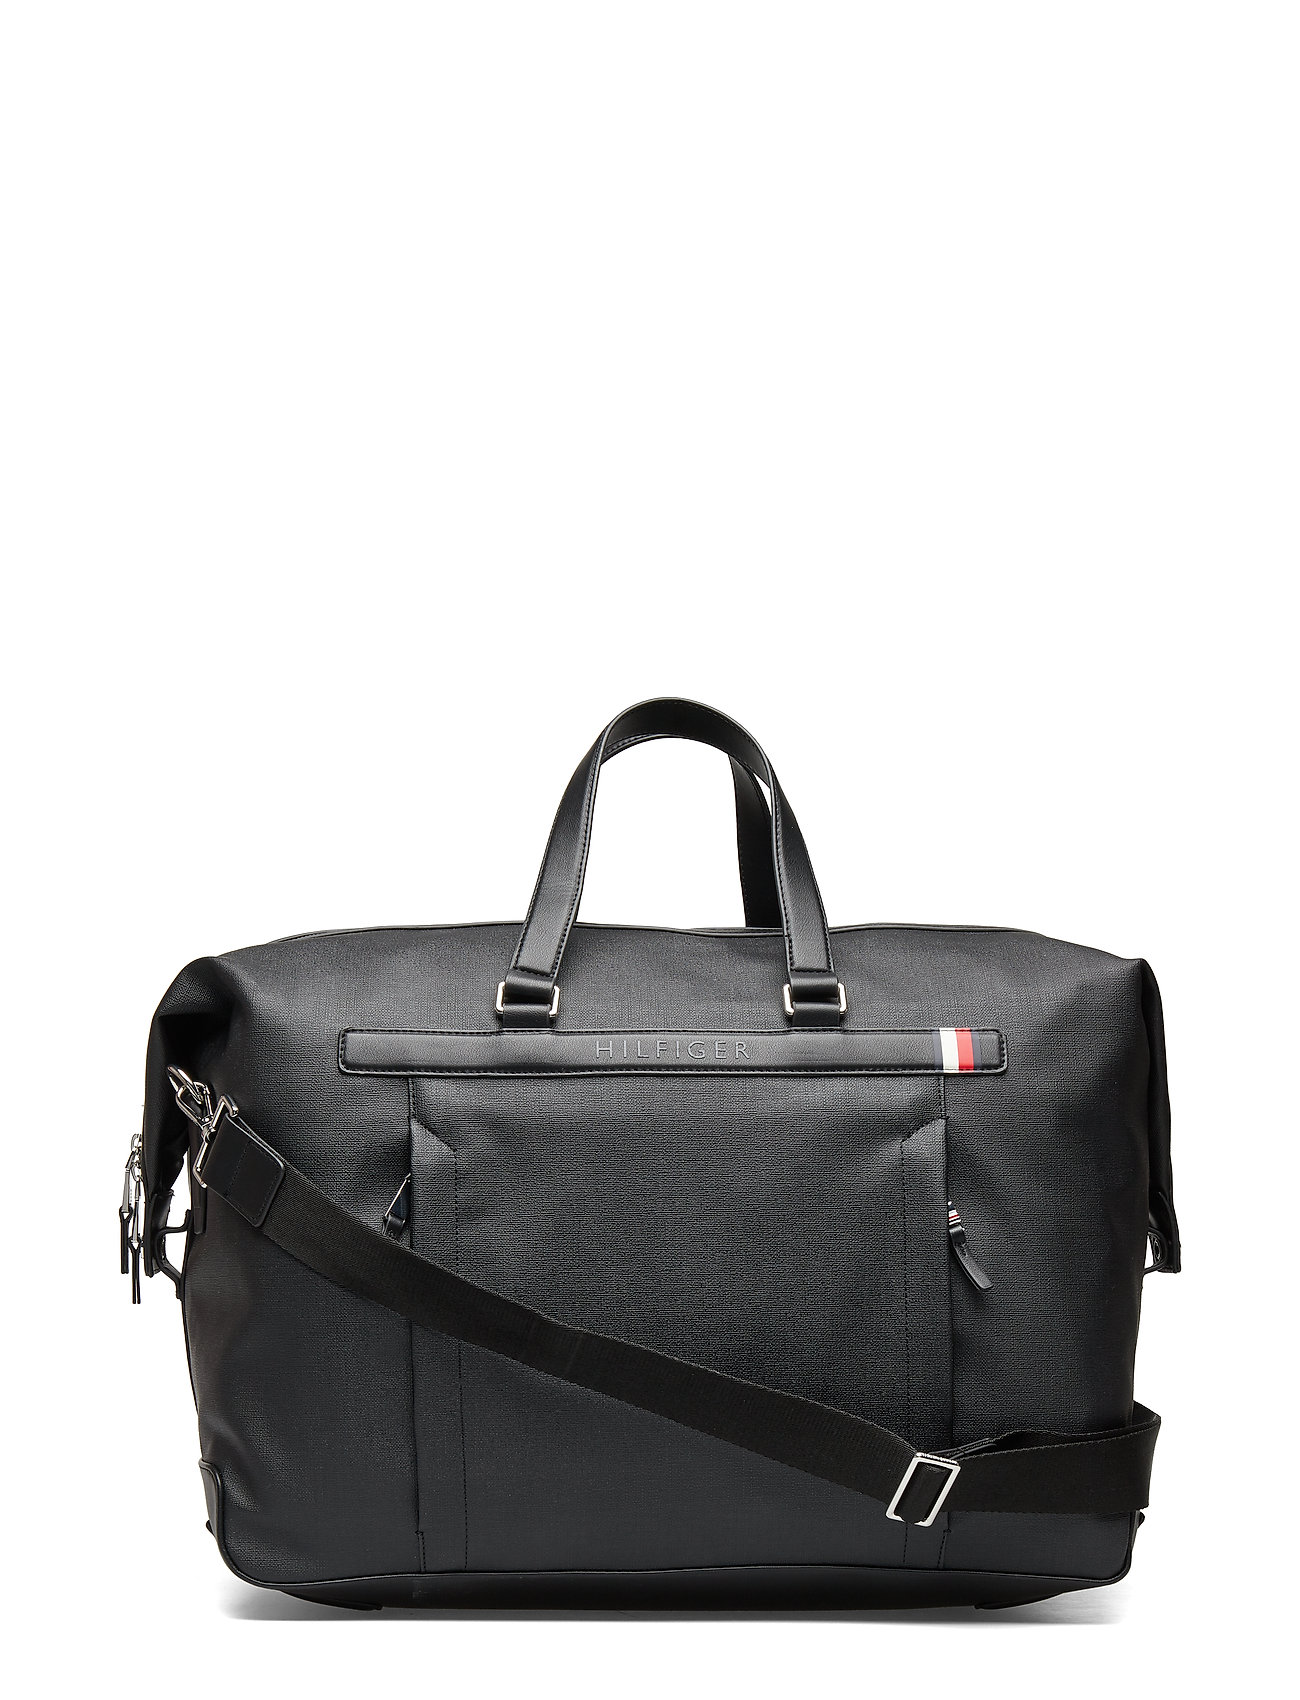 TOMMY HILFIGER Coated Canvas Duffle Bags Weekend & Gym Bags Schwarz TOMMY HILFIGER